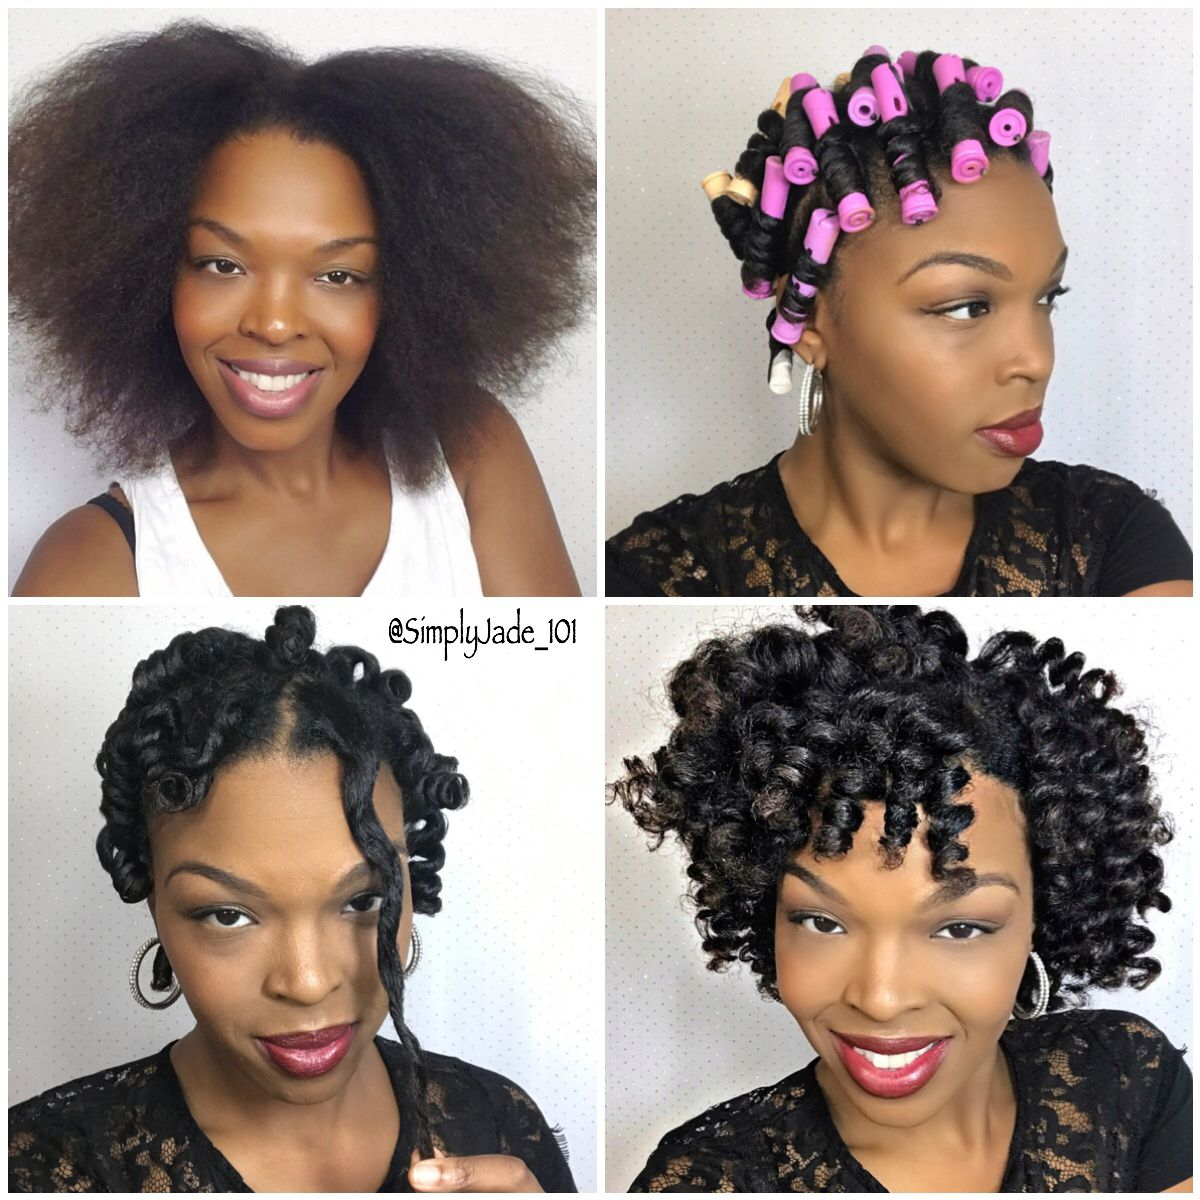 Curling Short Natural Hair With Perm Rods